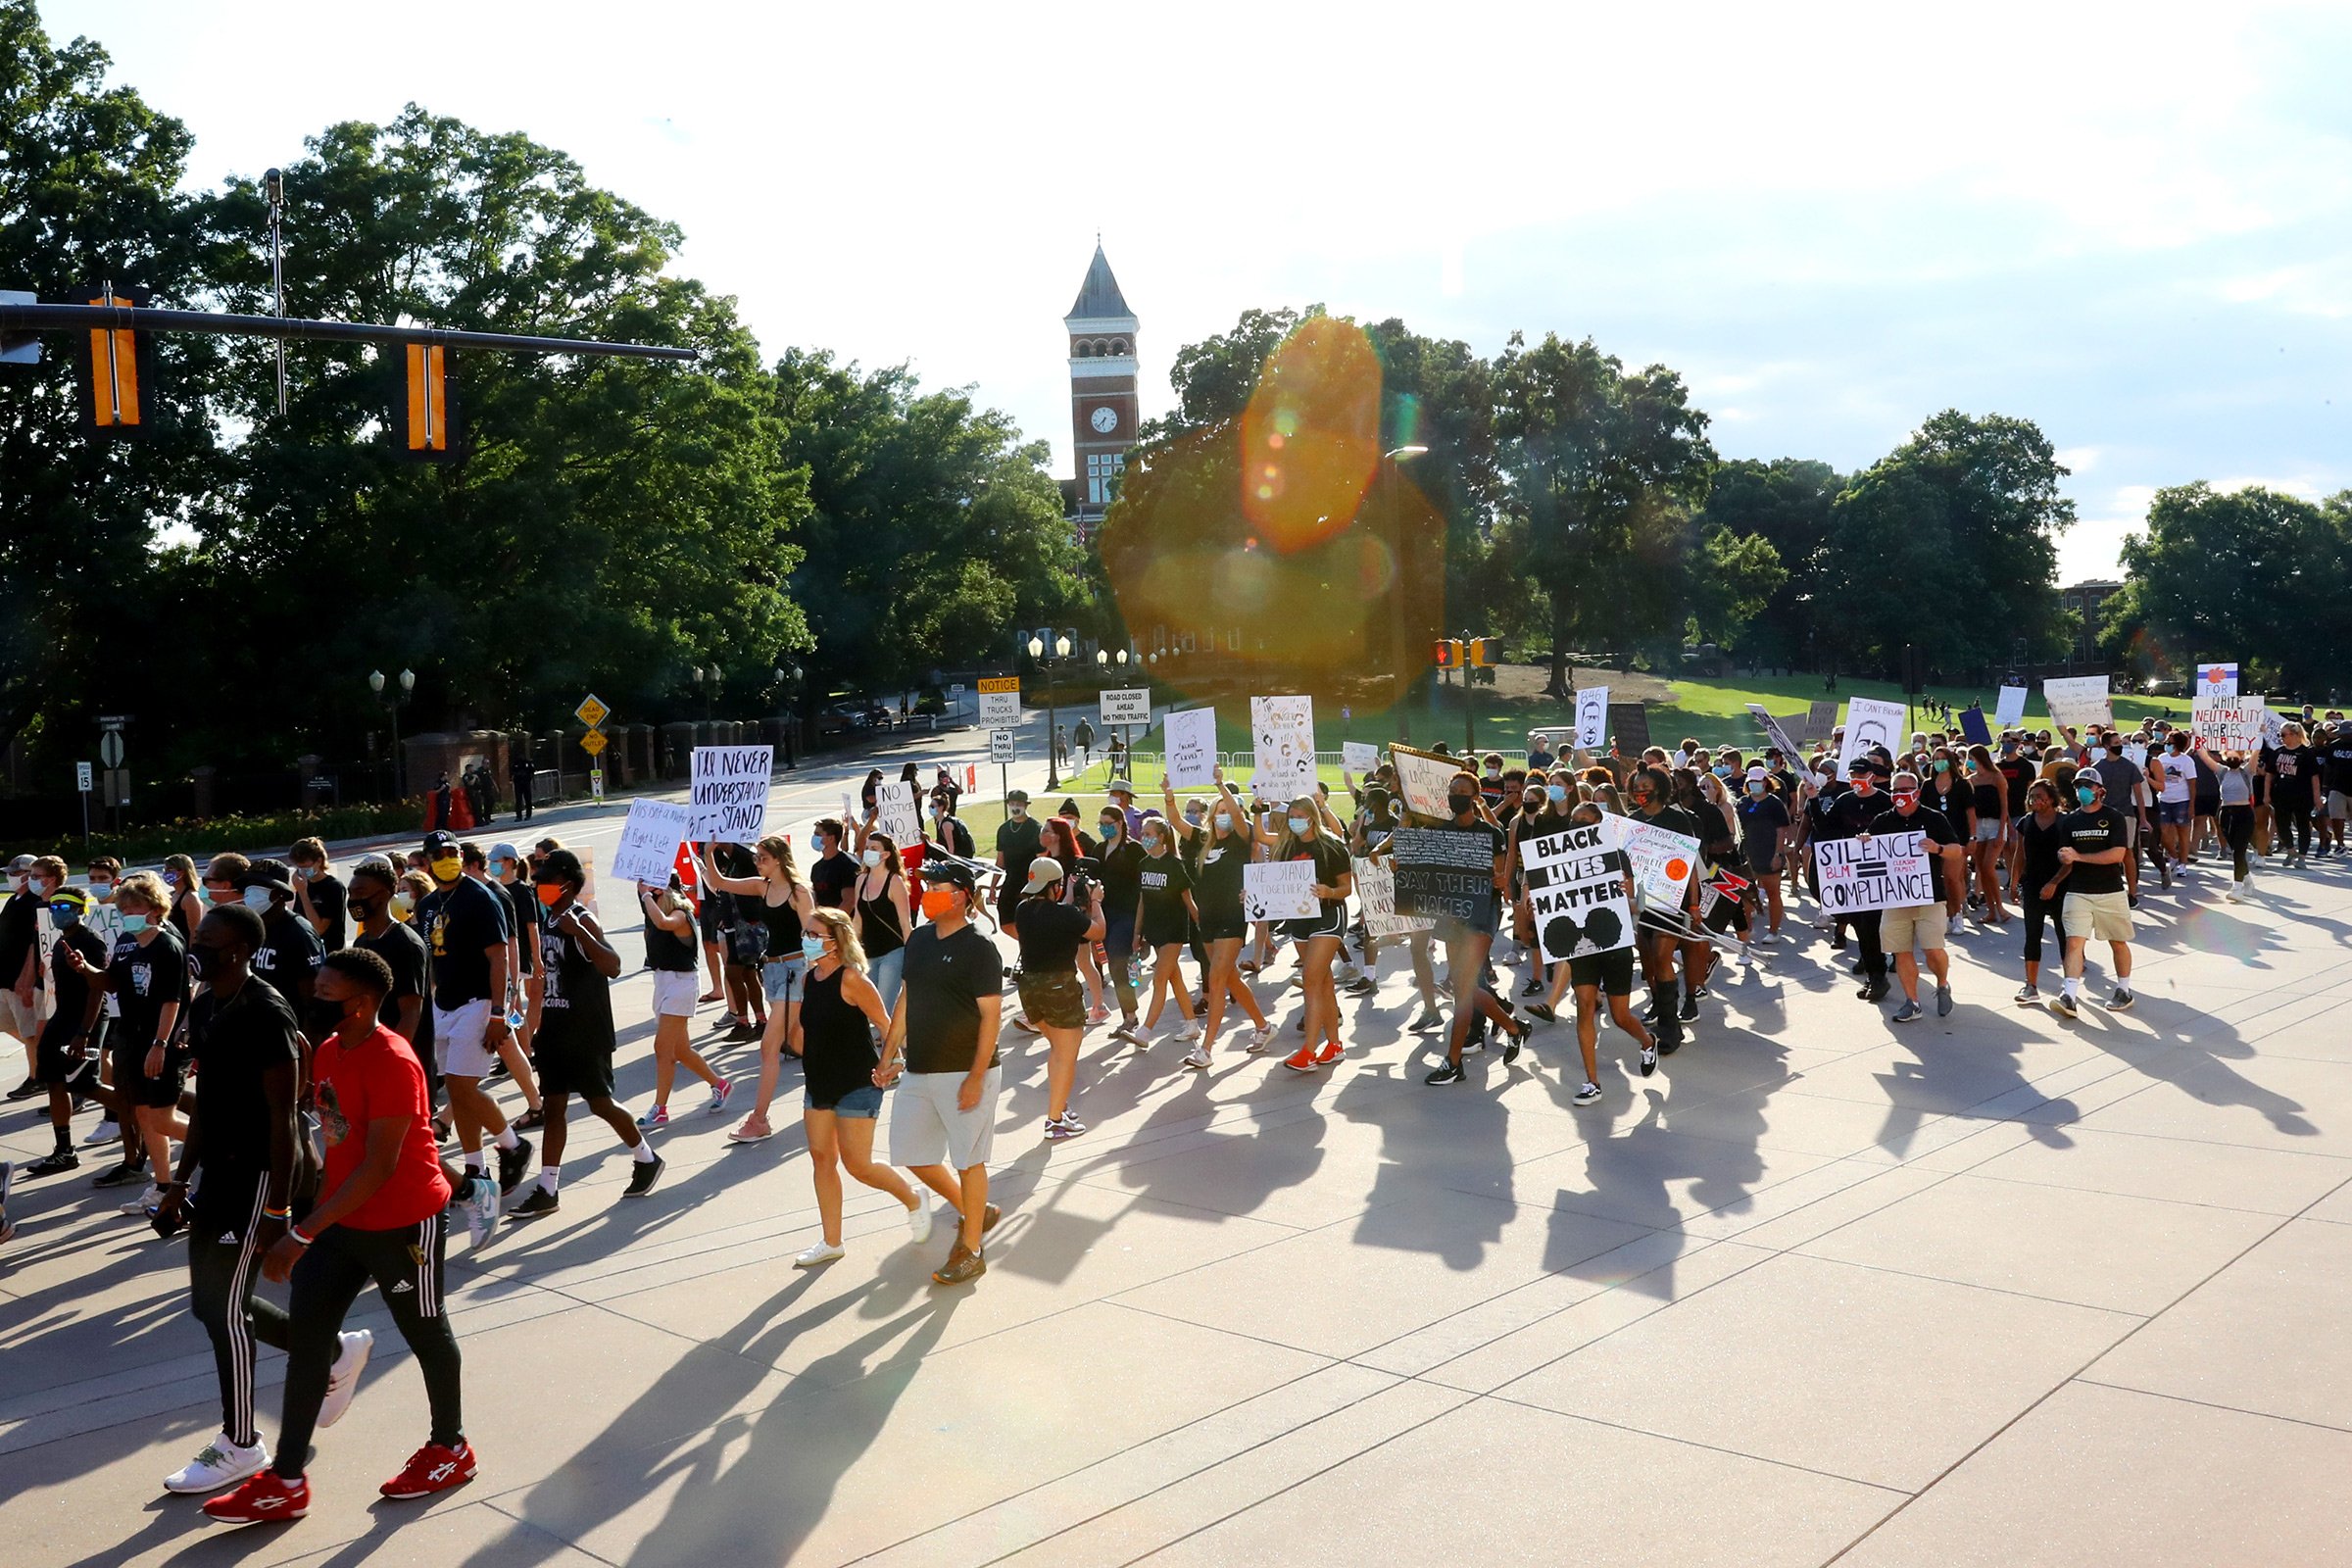 Clemson University football players lead a  March for Change  protest past Tillman Hall on June 13 in Clemson, South Carolina. The Clemson University Board of Trustees voted to strip  Calhoun  from their Honors College name and rename Tillman Hall.